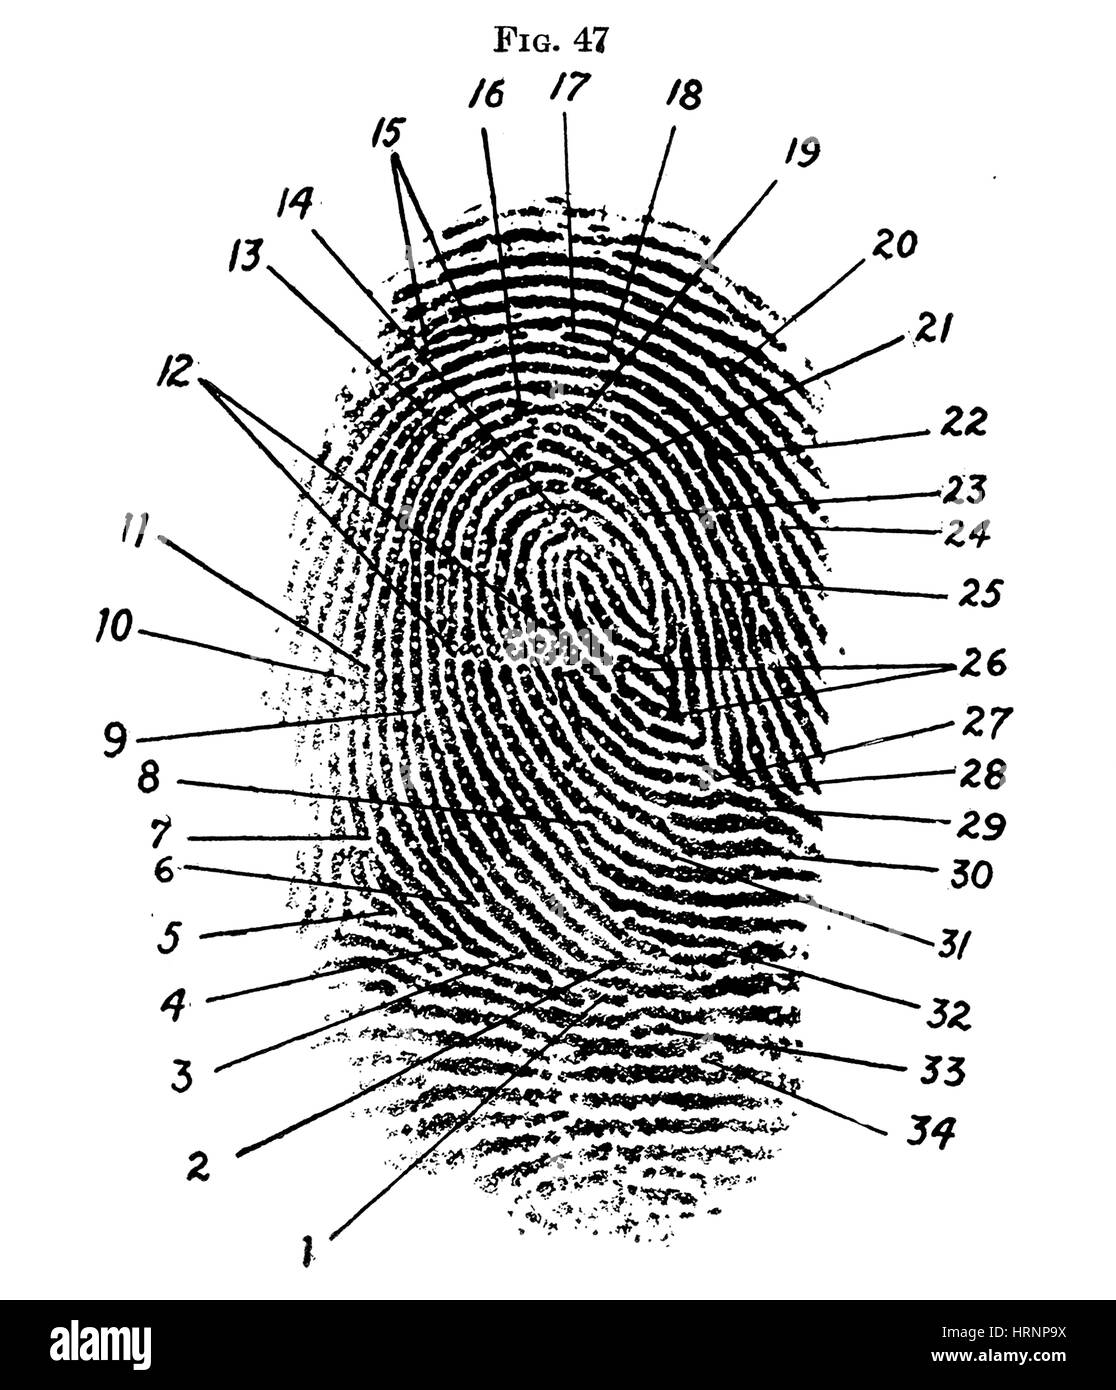 Fingerprint Diagram  1940 Stock Photo  135088182